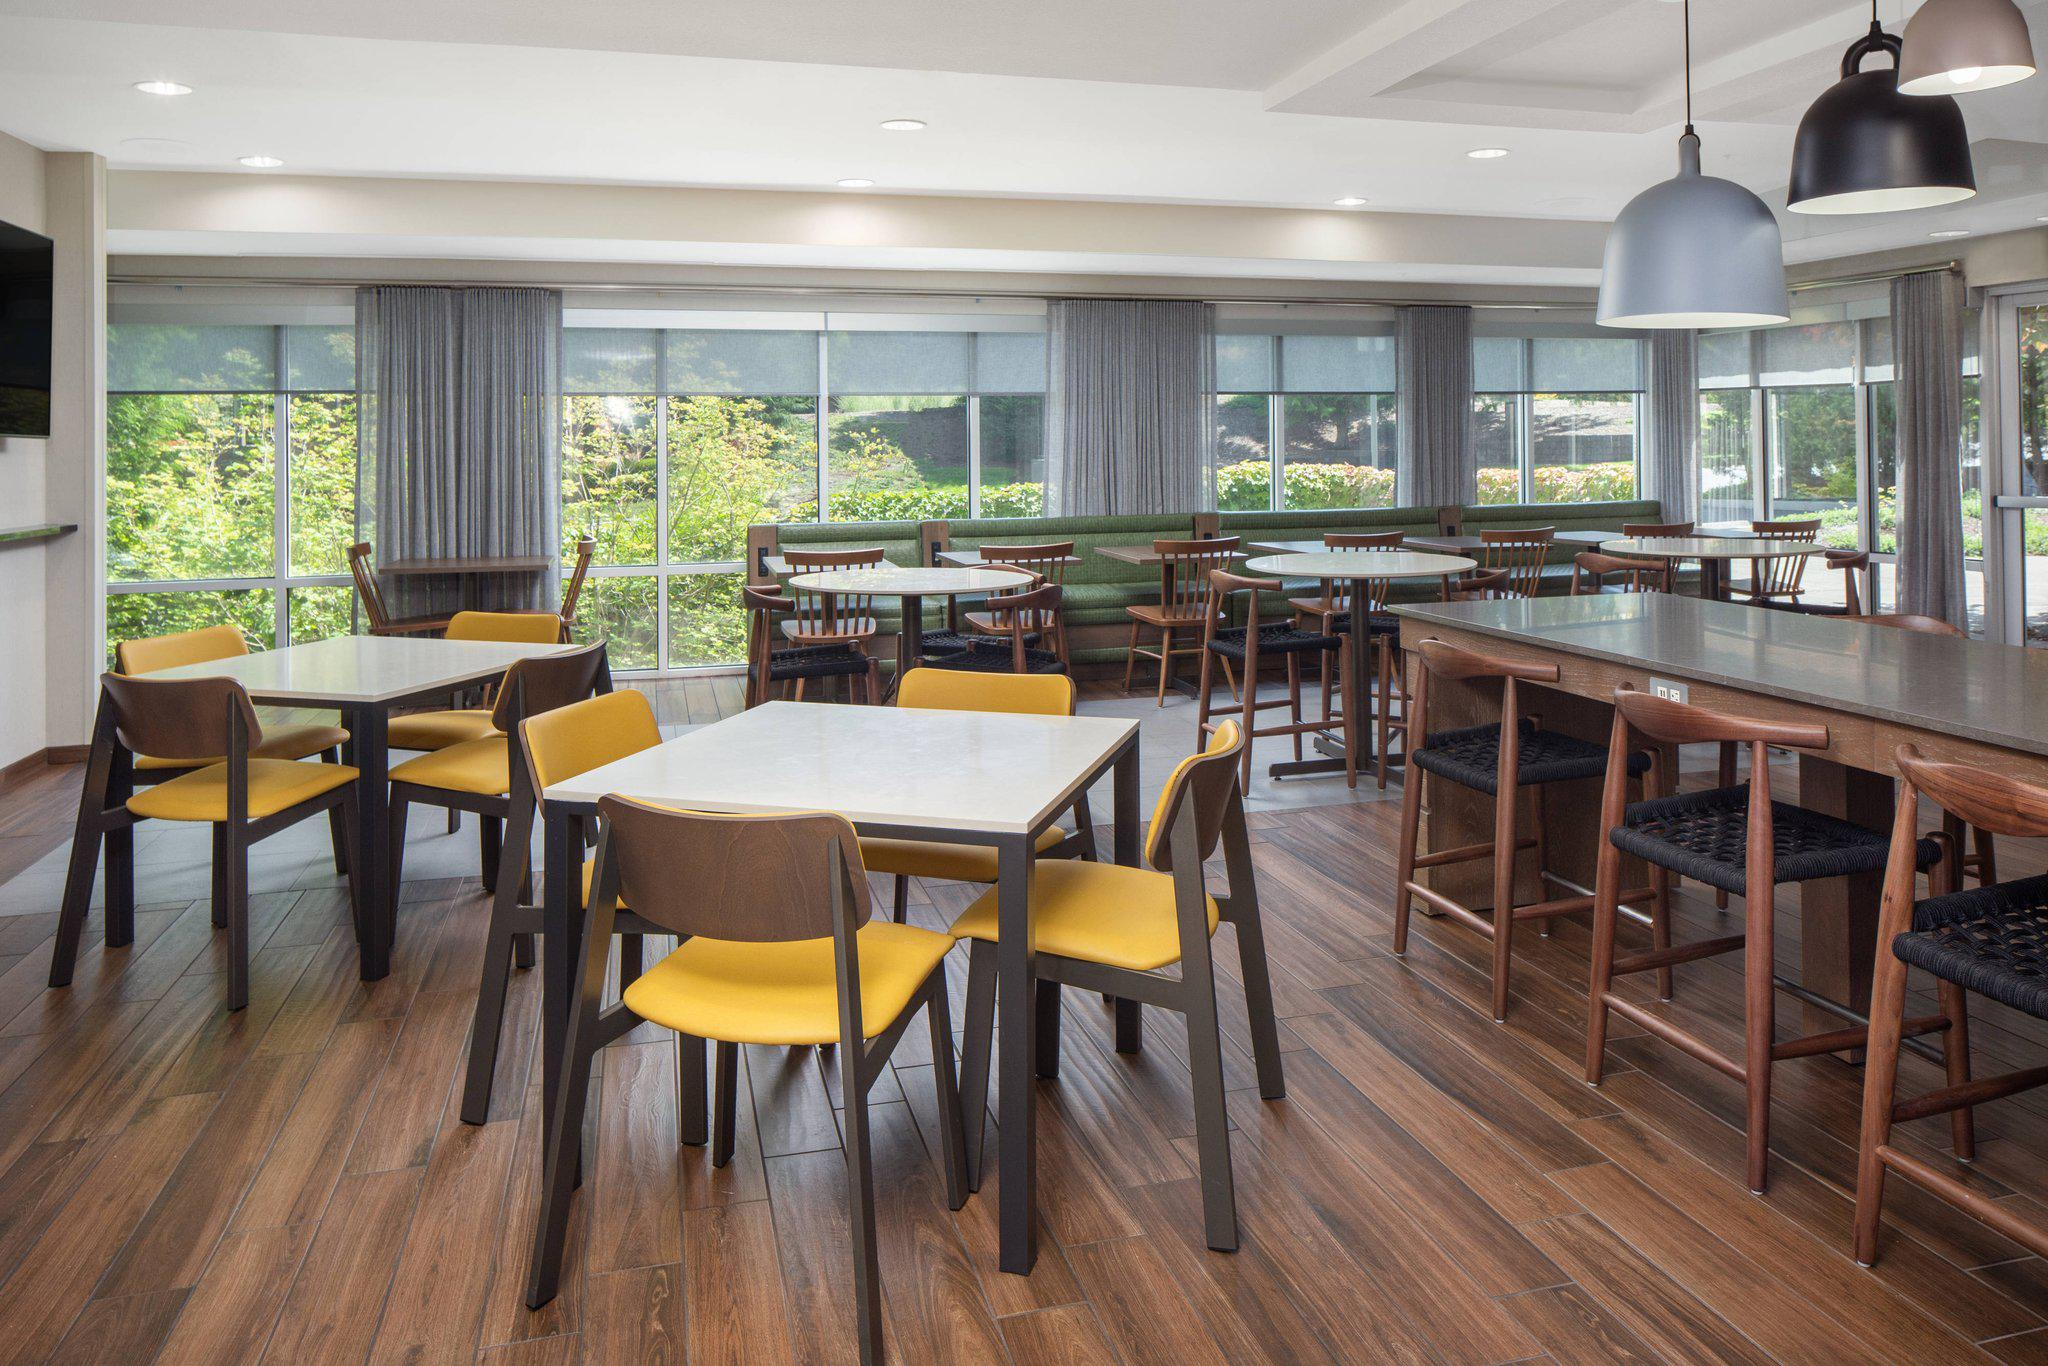 Fairfield Inn & Suites by Marriott Portland West/Beaverton